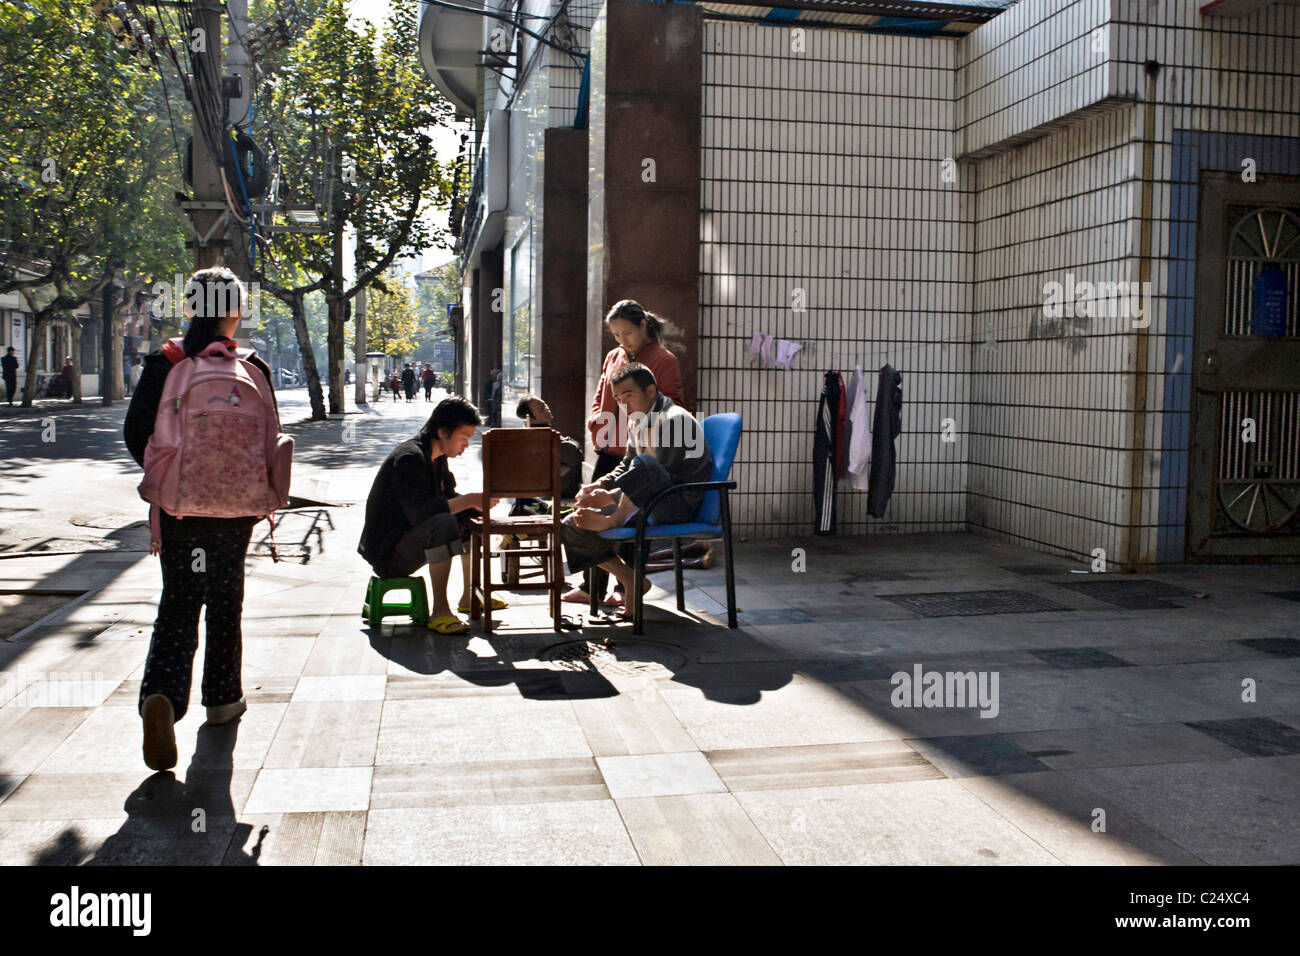 CHINA, WUHAN: Street scene in Wuhan with men playing a card game on chairs on the sidewalk, a young girl with a - Stock Image